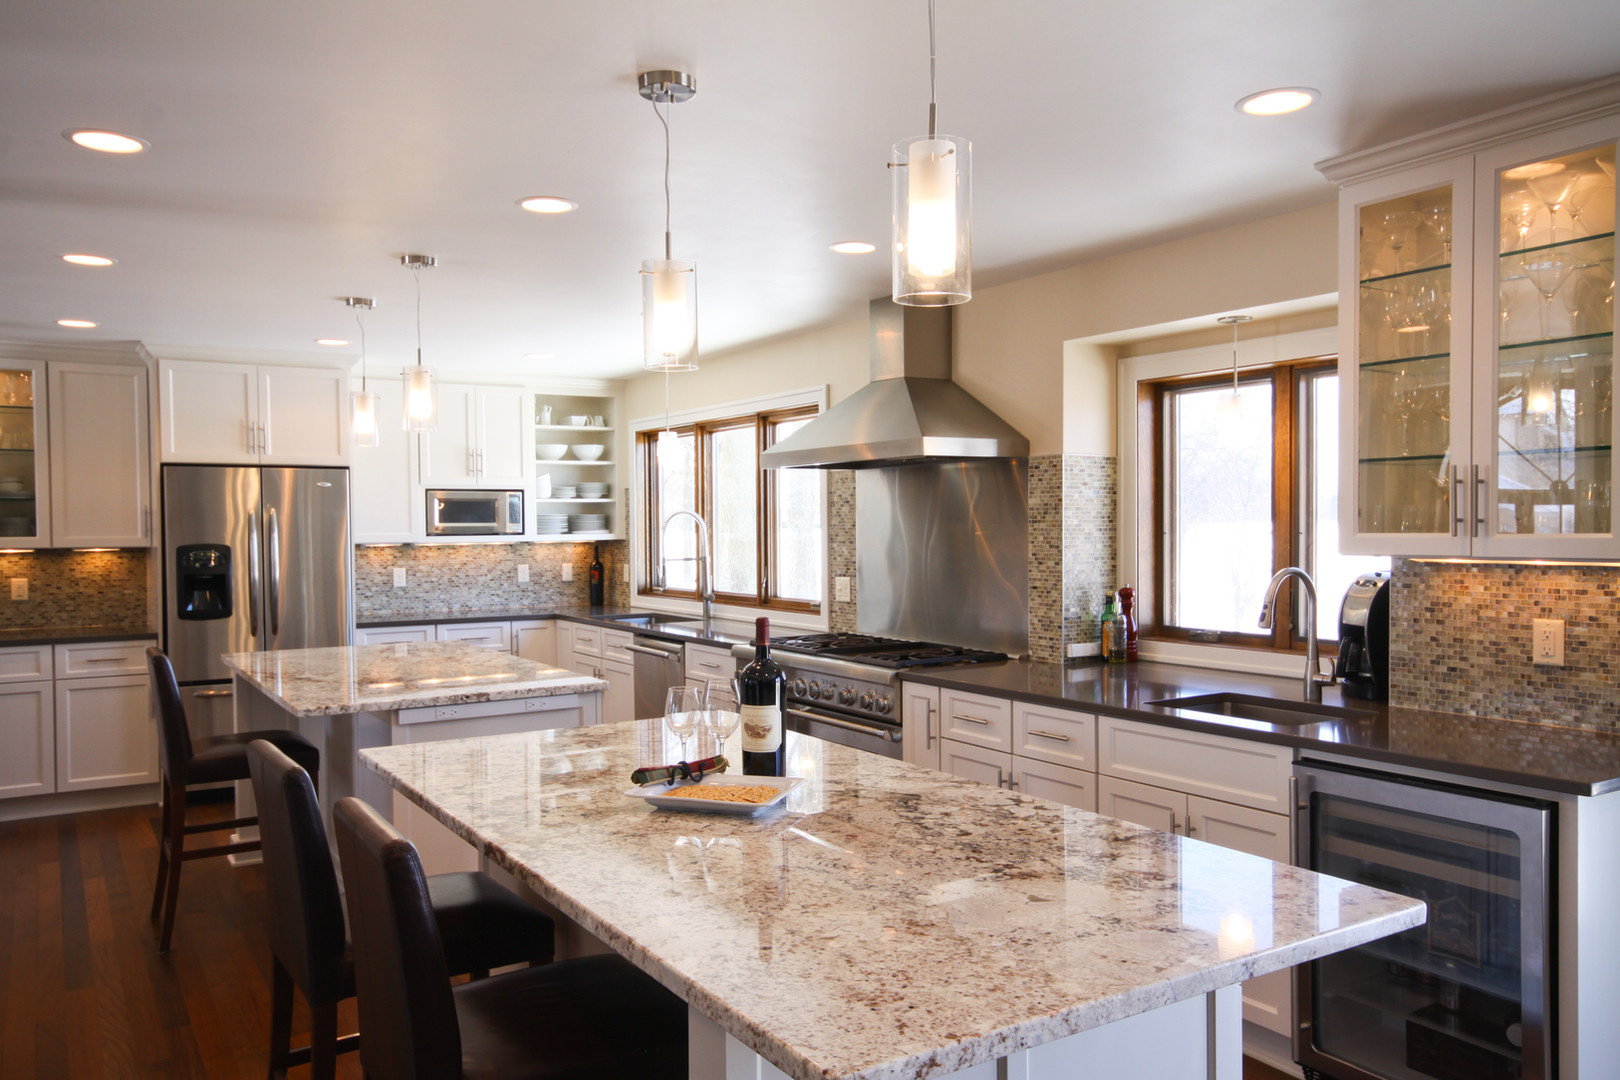 CONTEMPORARY BROOKLYN  PARK KITCHEN:   Once we removed the wall between the old kitchen and dining room, this spacious kitchen came into its own